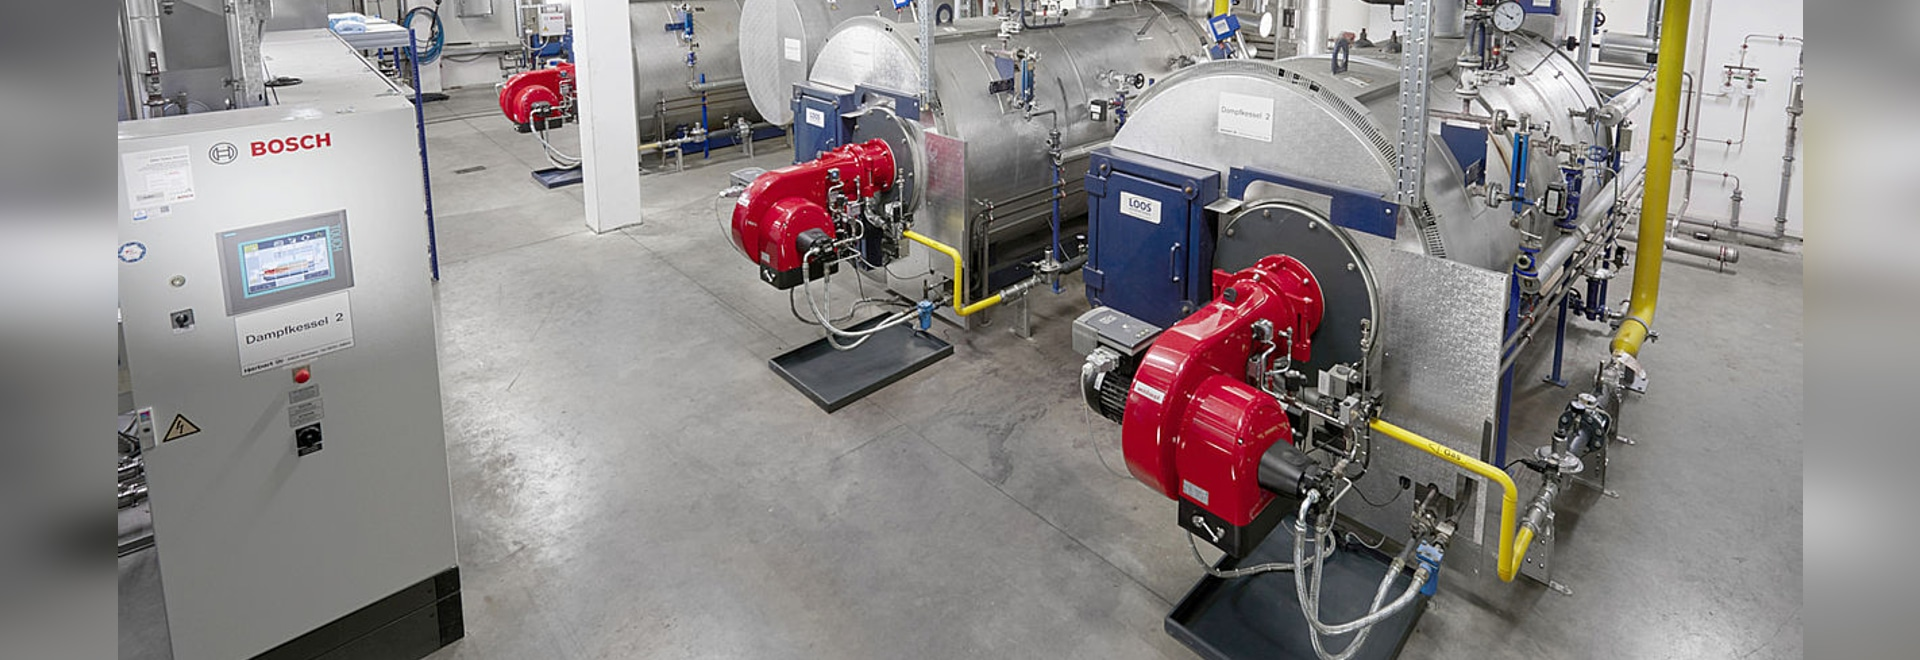 Fleischwaren Sutter modernises process heat supply with boiler technology from Bosch